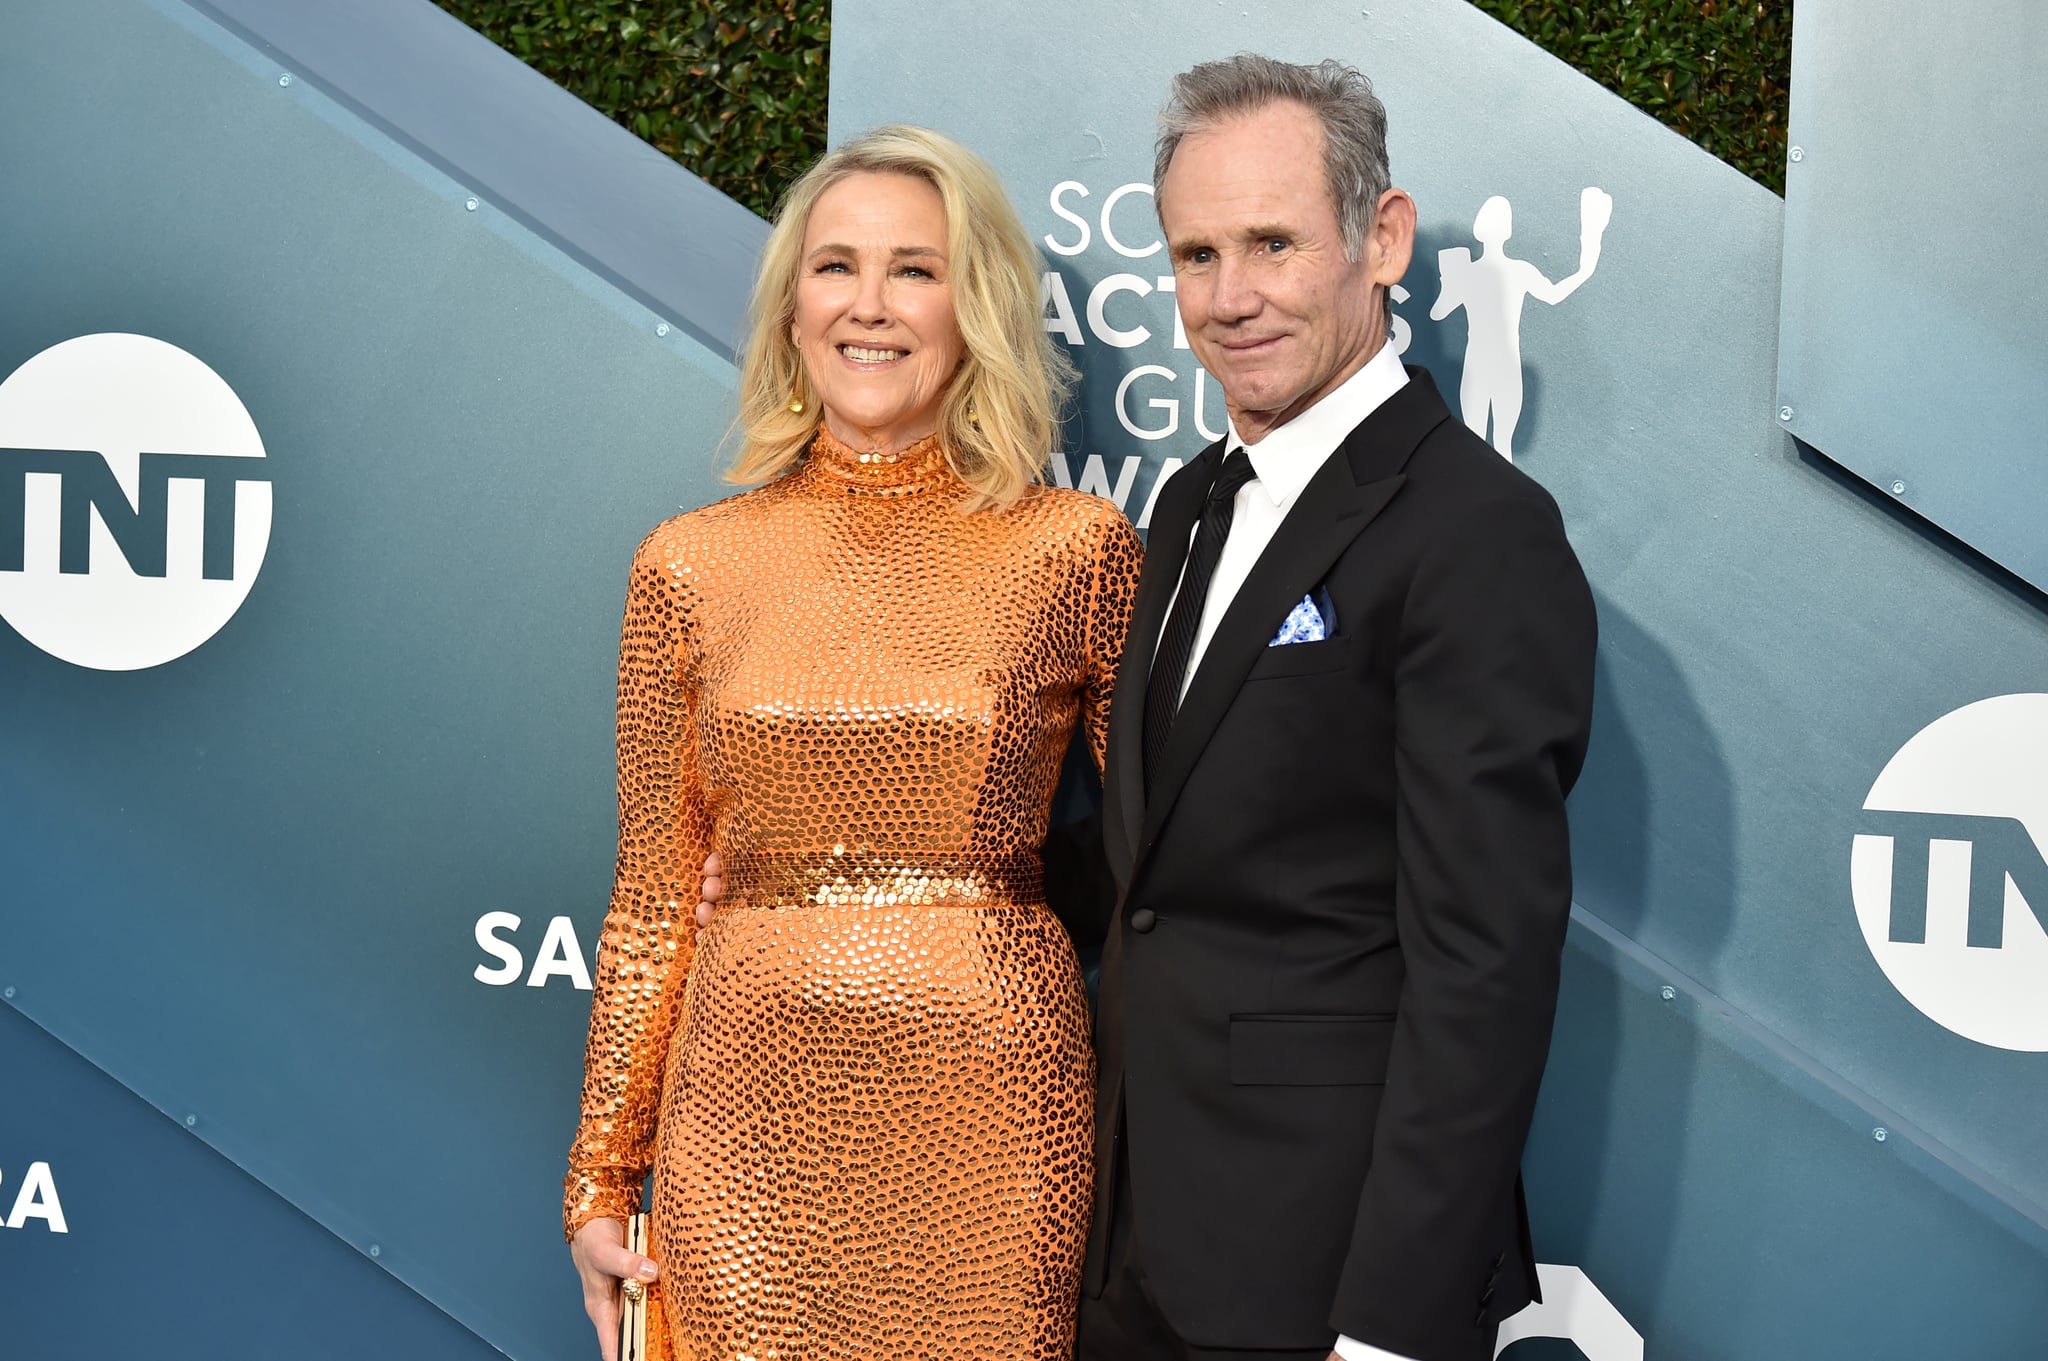 LOS ANGELES, CALIFORNIA - JANUARY 19: (L-R) Catherine O'Hara and Bo Welch attends the 26th Annual Screen Actors Guild Awards at The Shrine Auditorium on January 19, 2020 in Los Angeles, California. (Photo by Jeff Kravitz/FilmMagic)